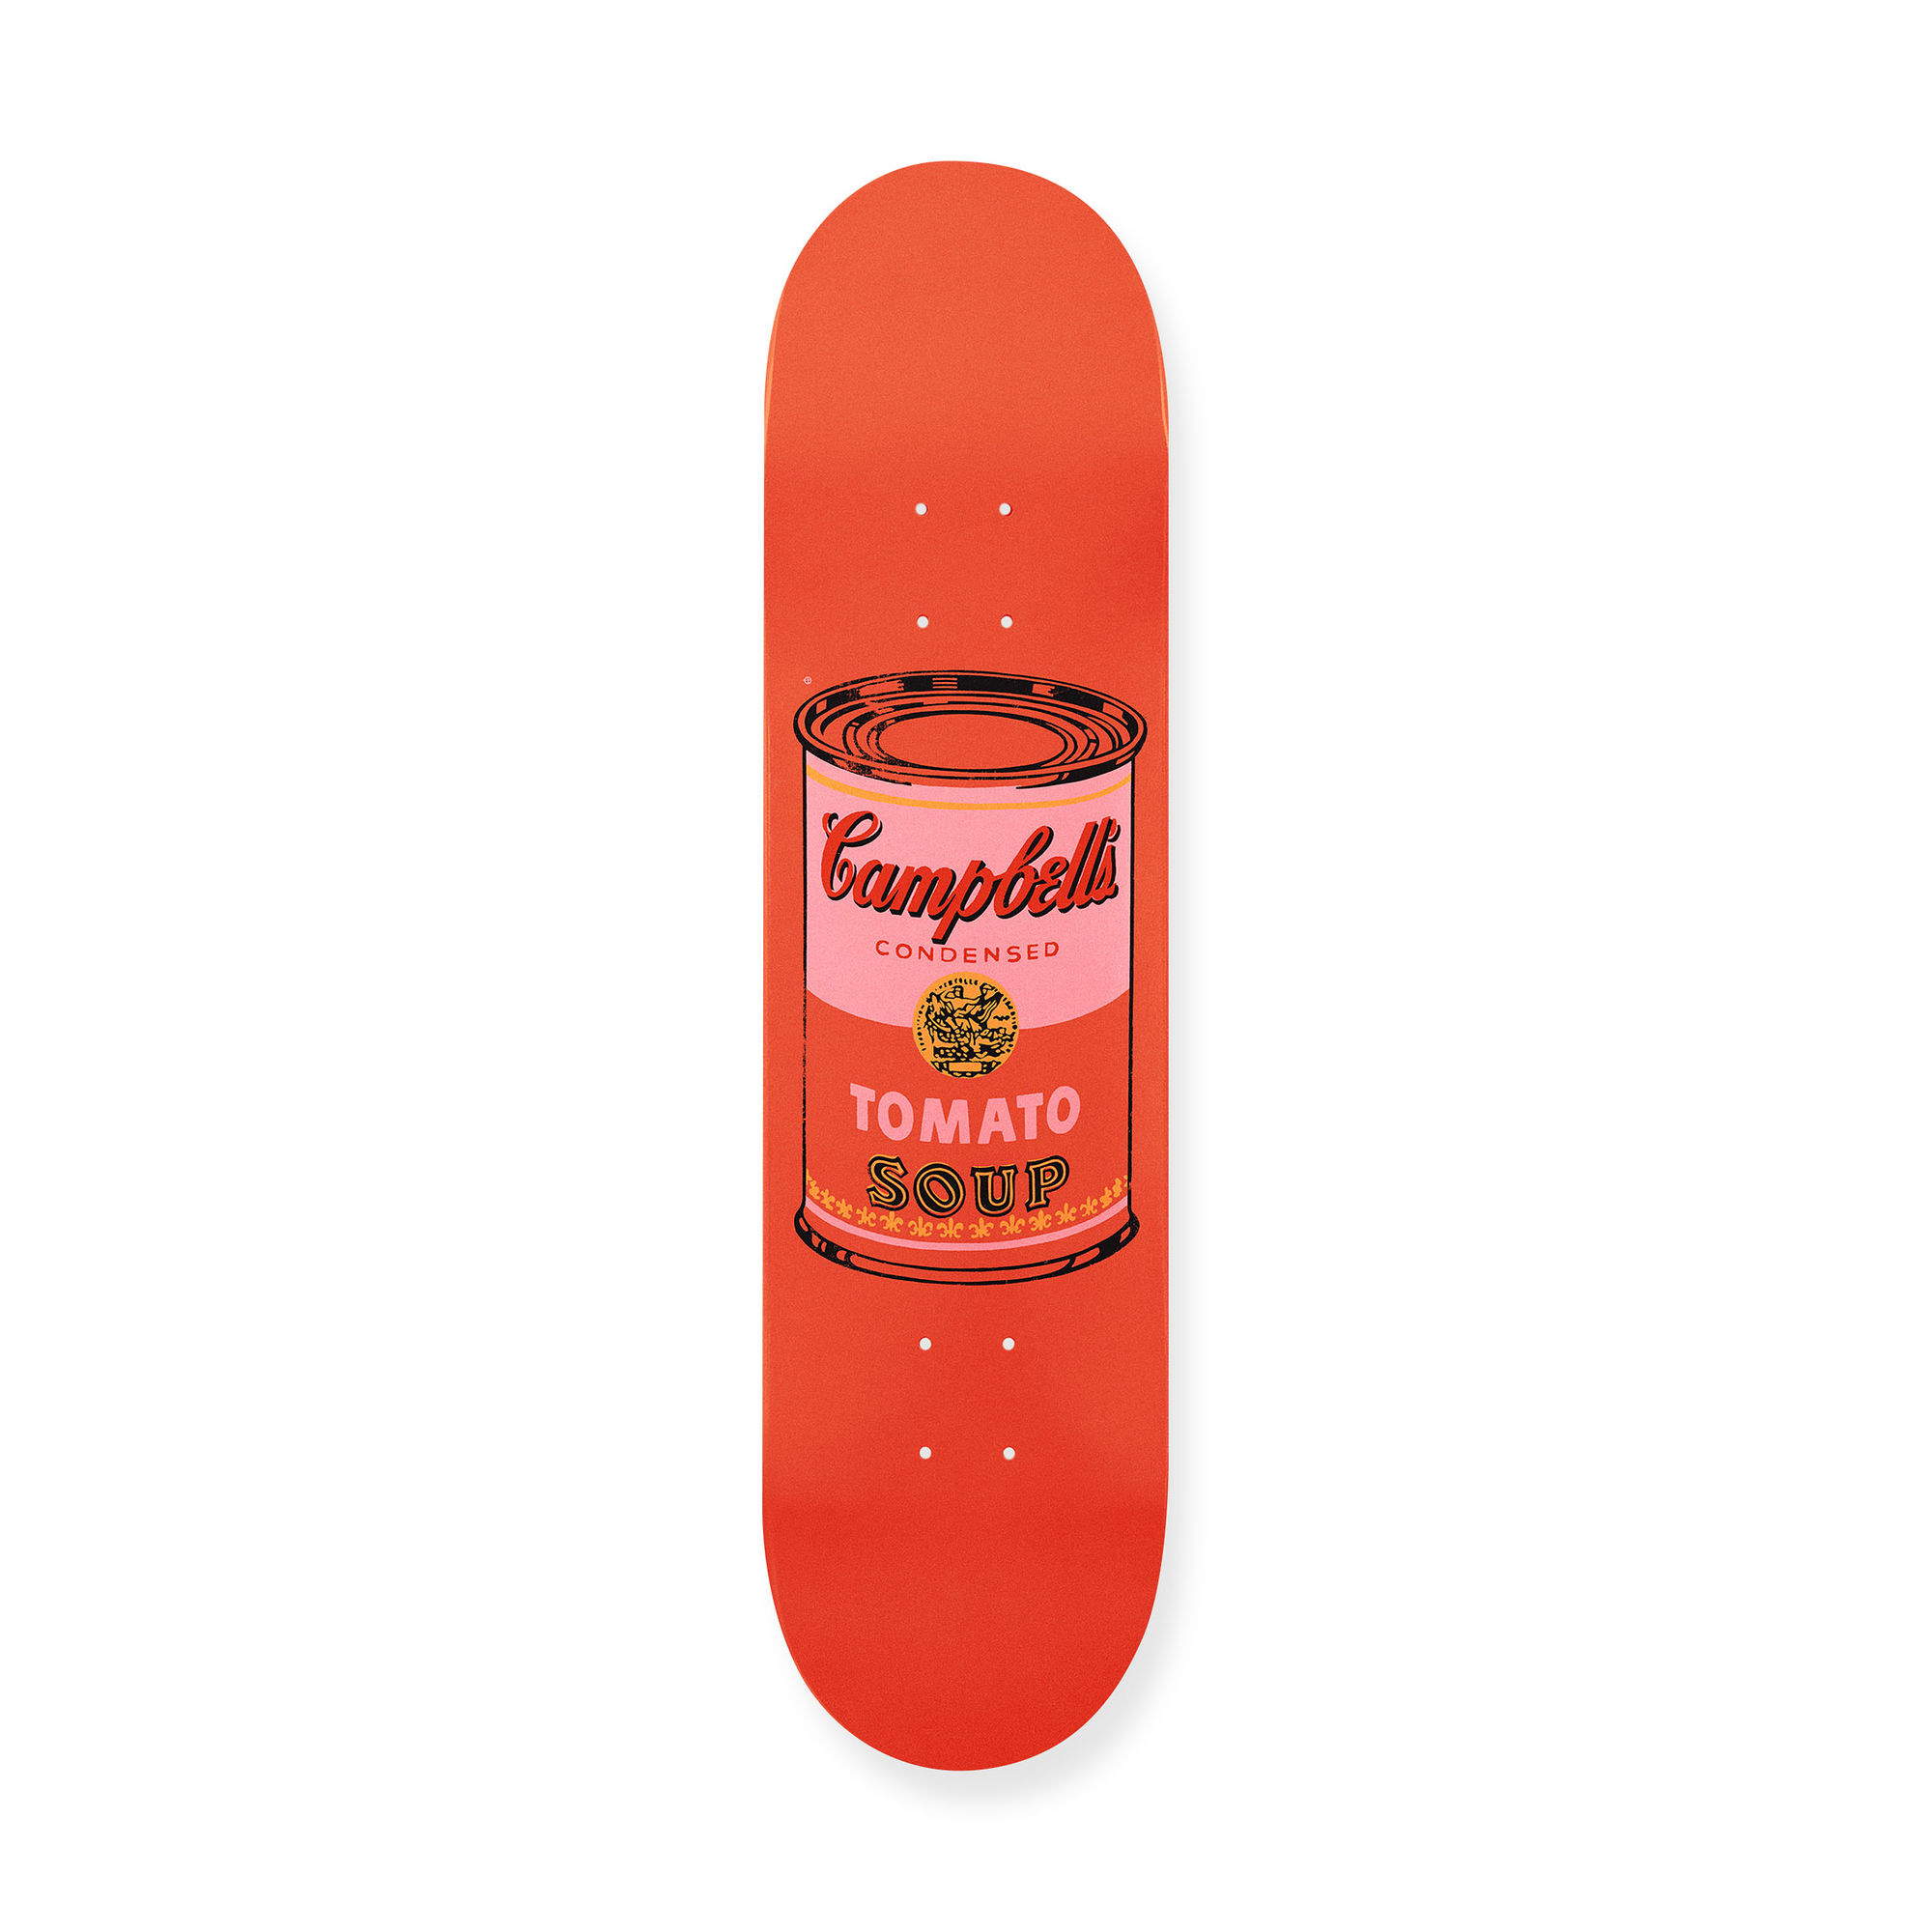 MoMA STOREウォーホル:スケートボードColored Campbell's Soup Cans Peach